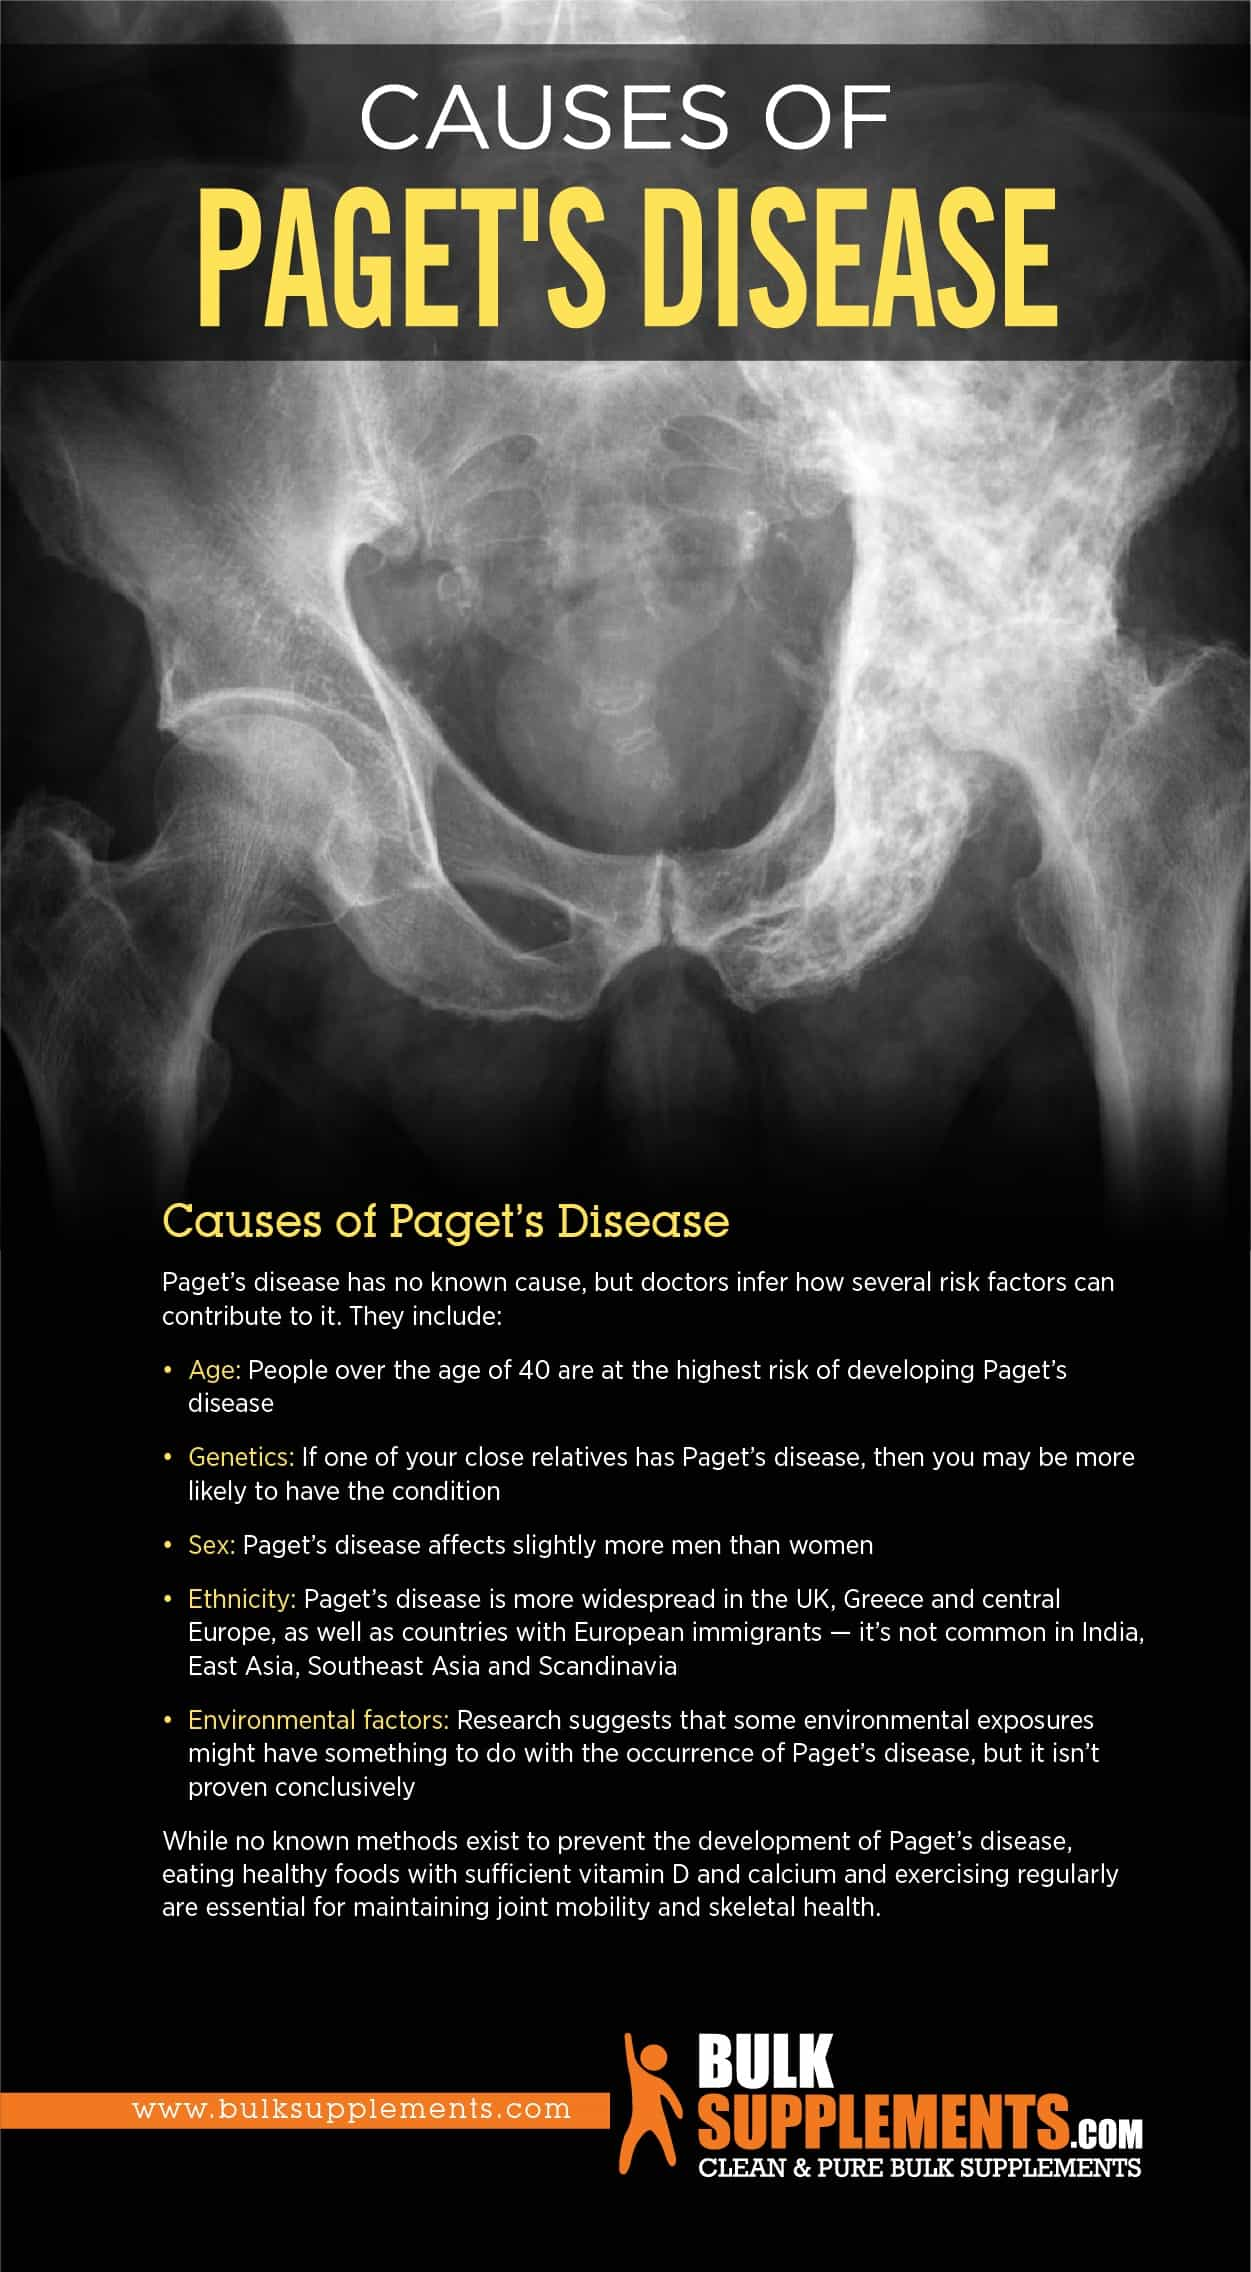 Causes of Paget's Disease